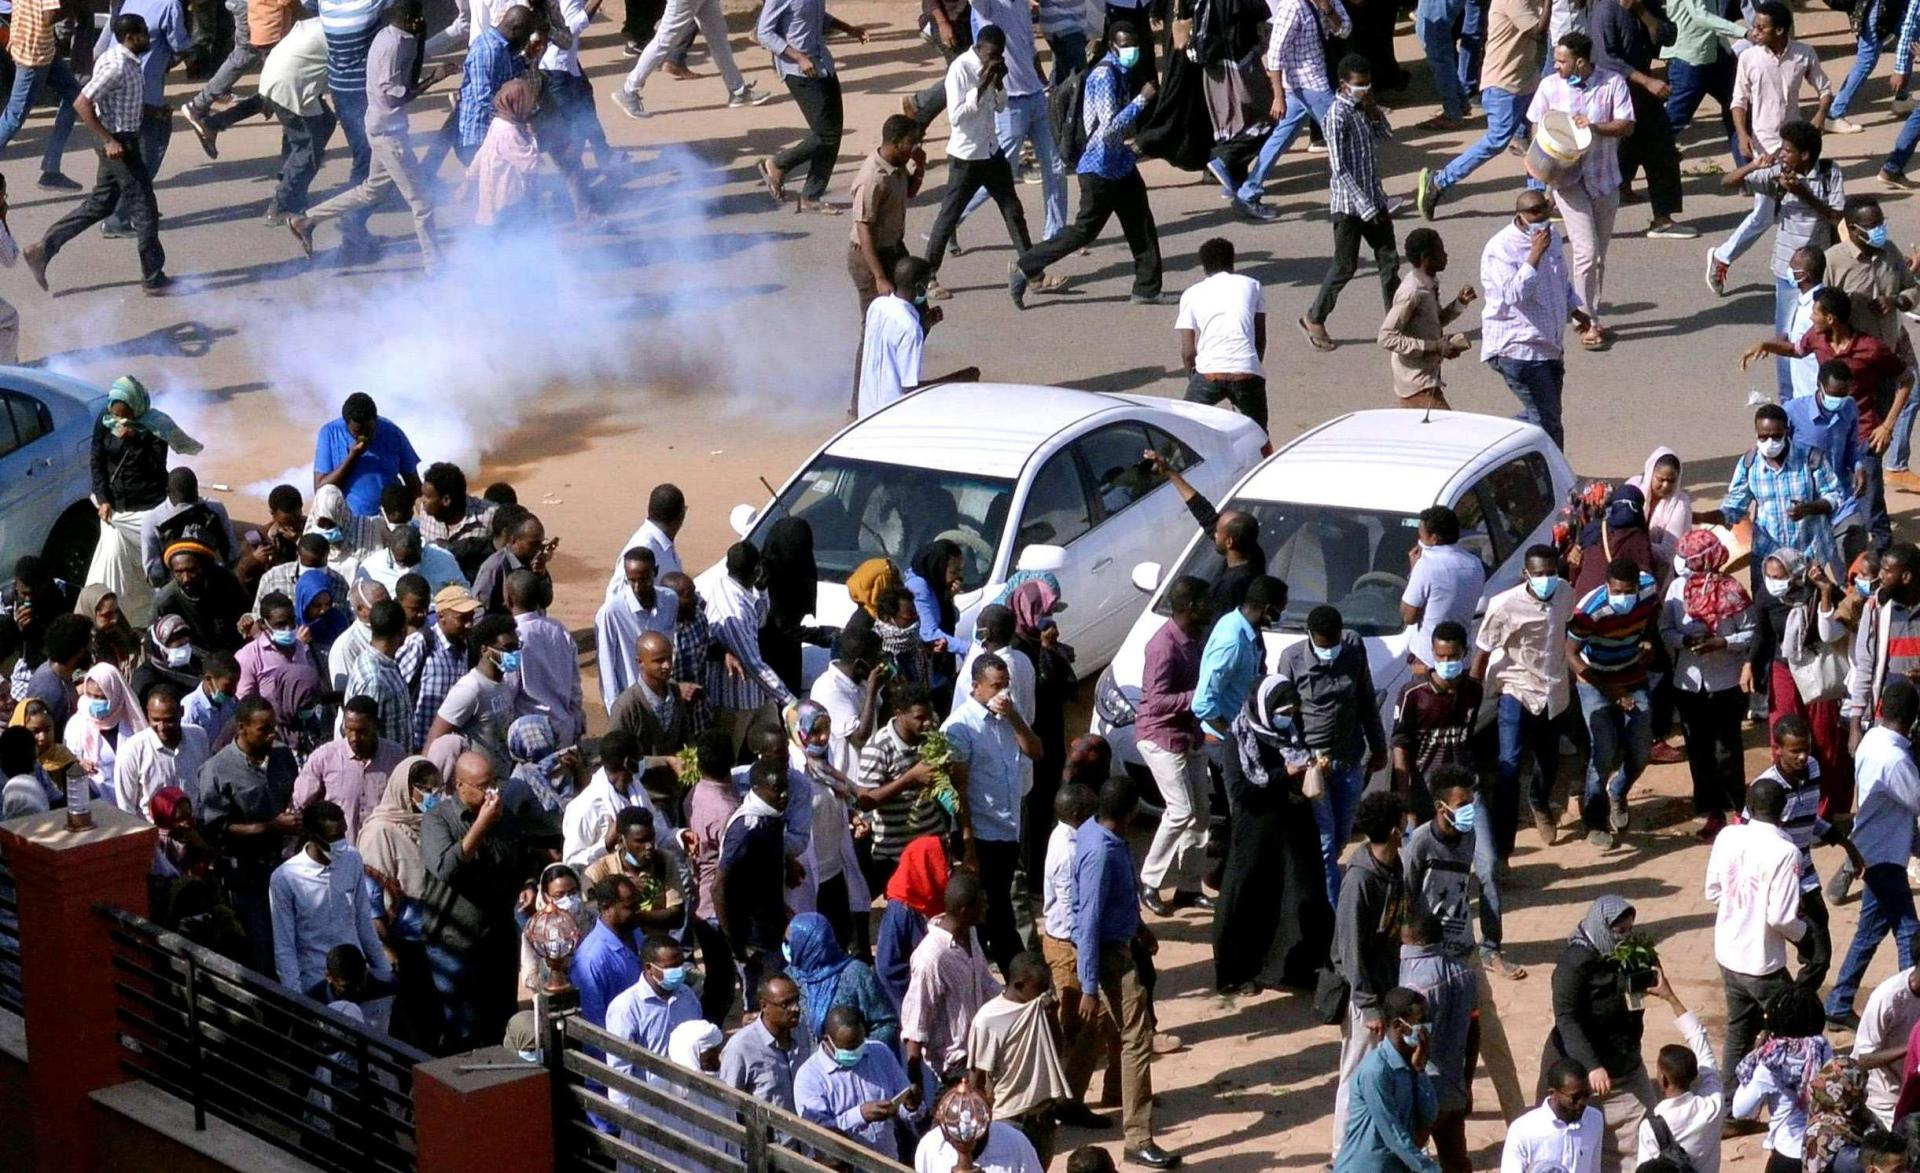 Sudan should stop systematic attacks against journalists and protesters, heed their peaceful demands